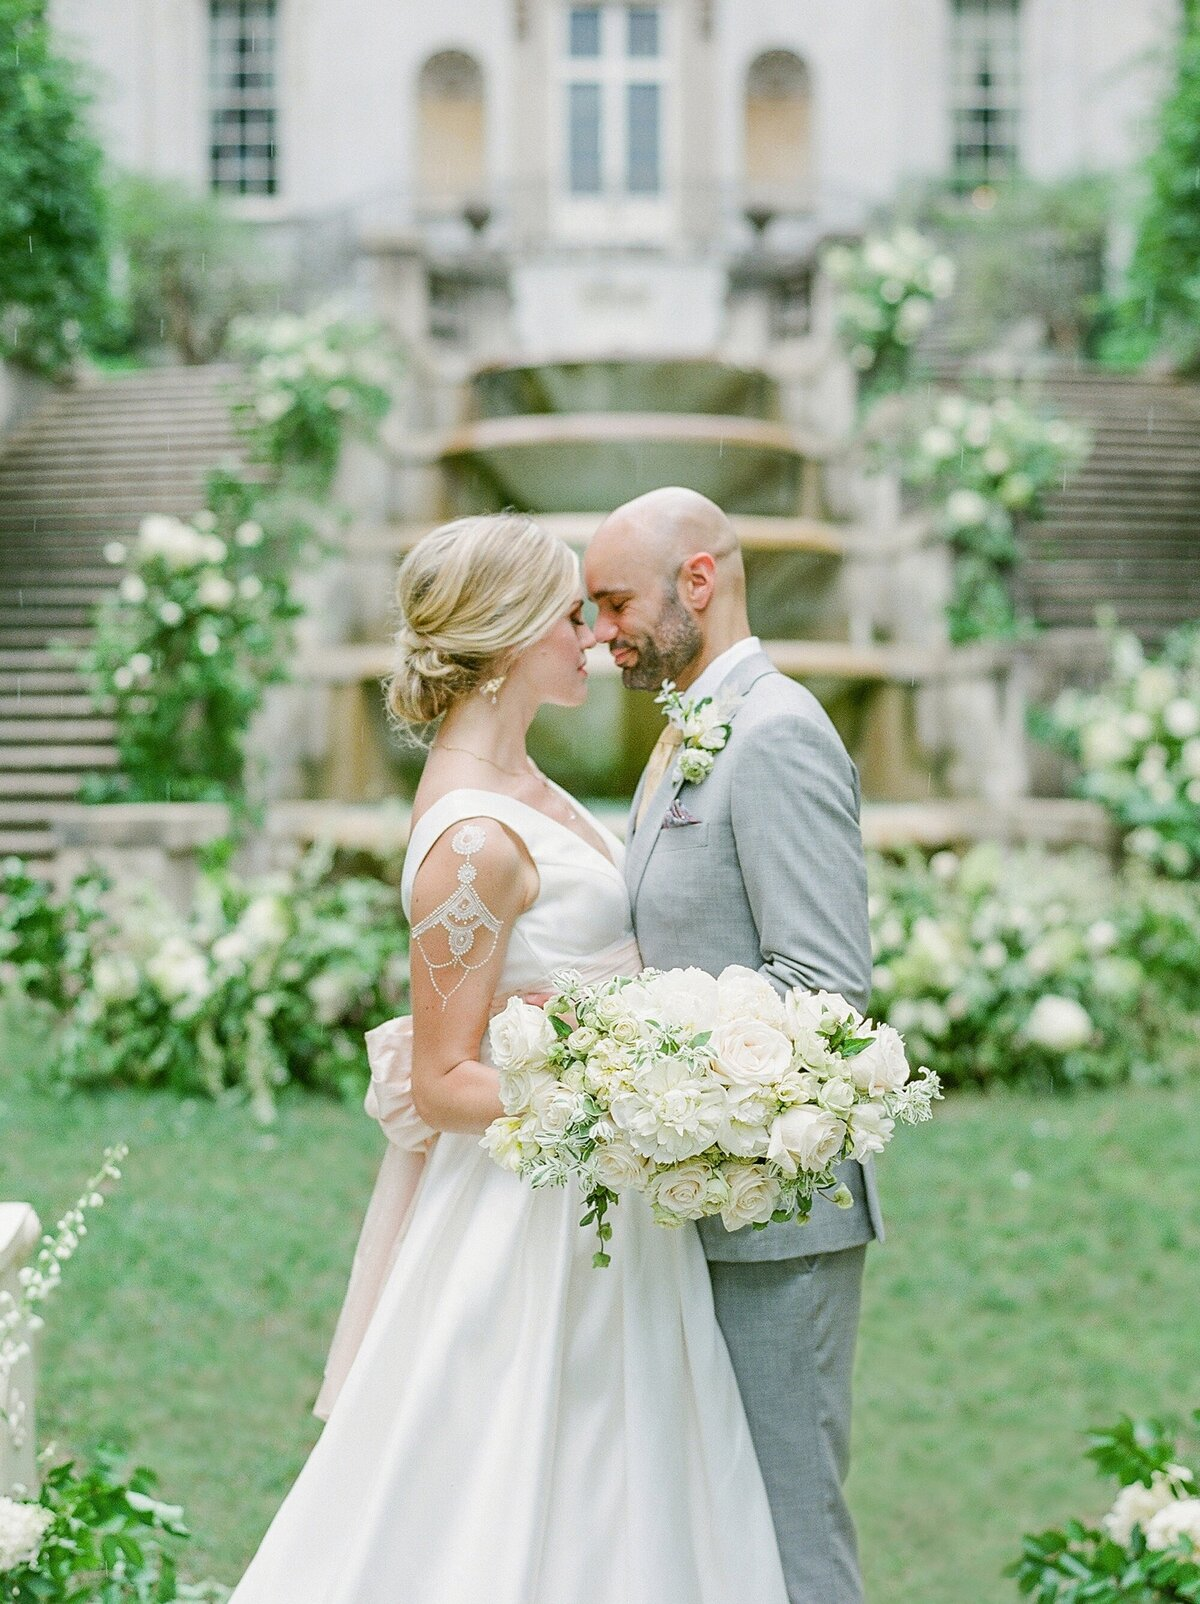 Birmingham-Alabama-Wedding-Photographer_Swan-House-Atlanta-Wedding_74